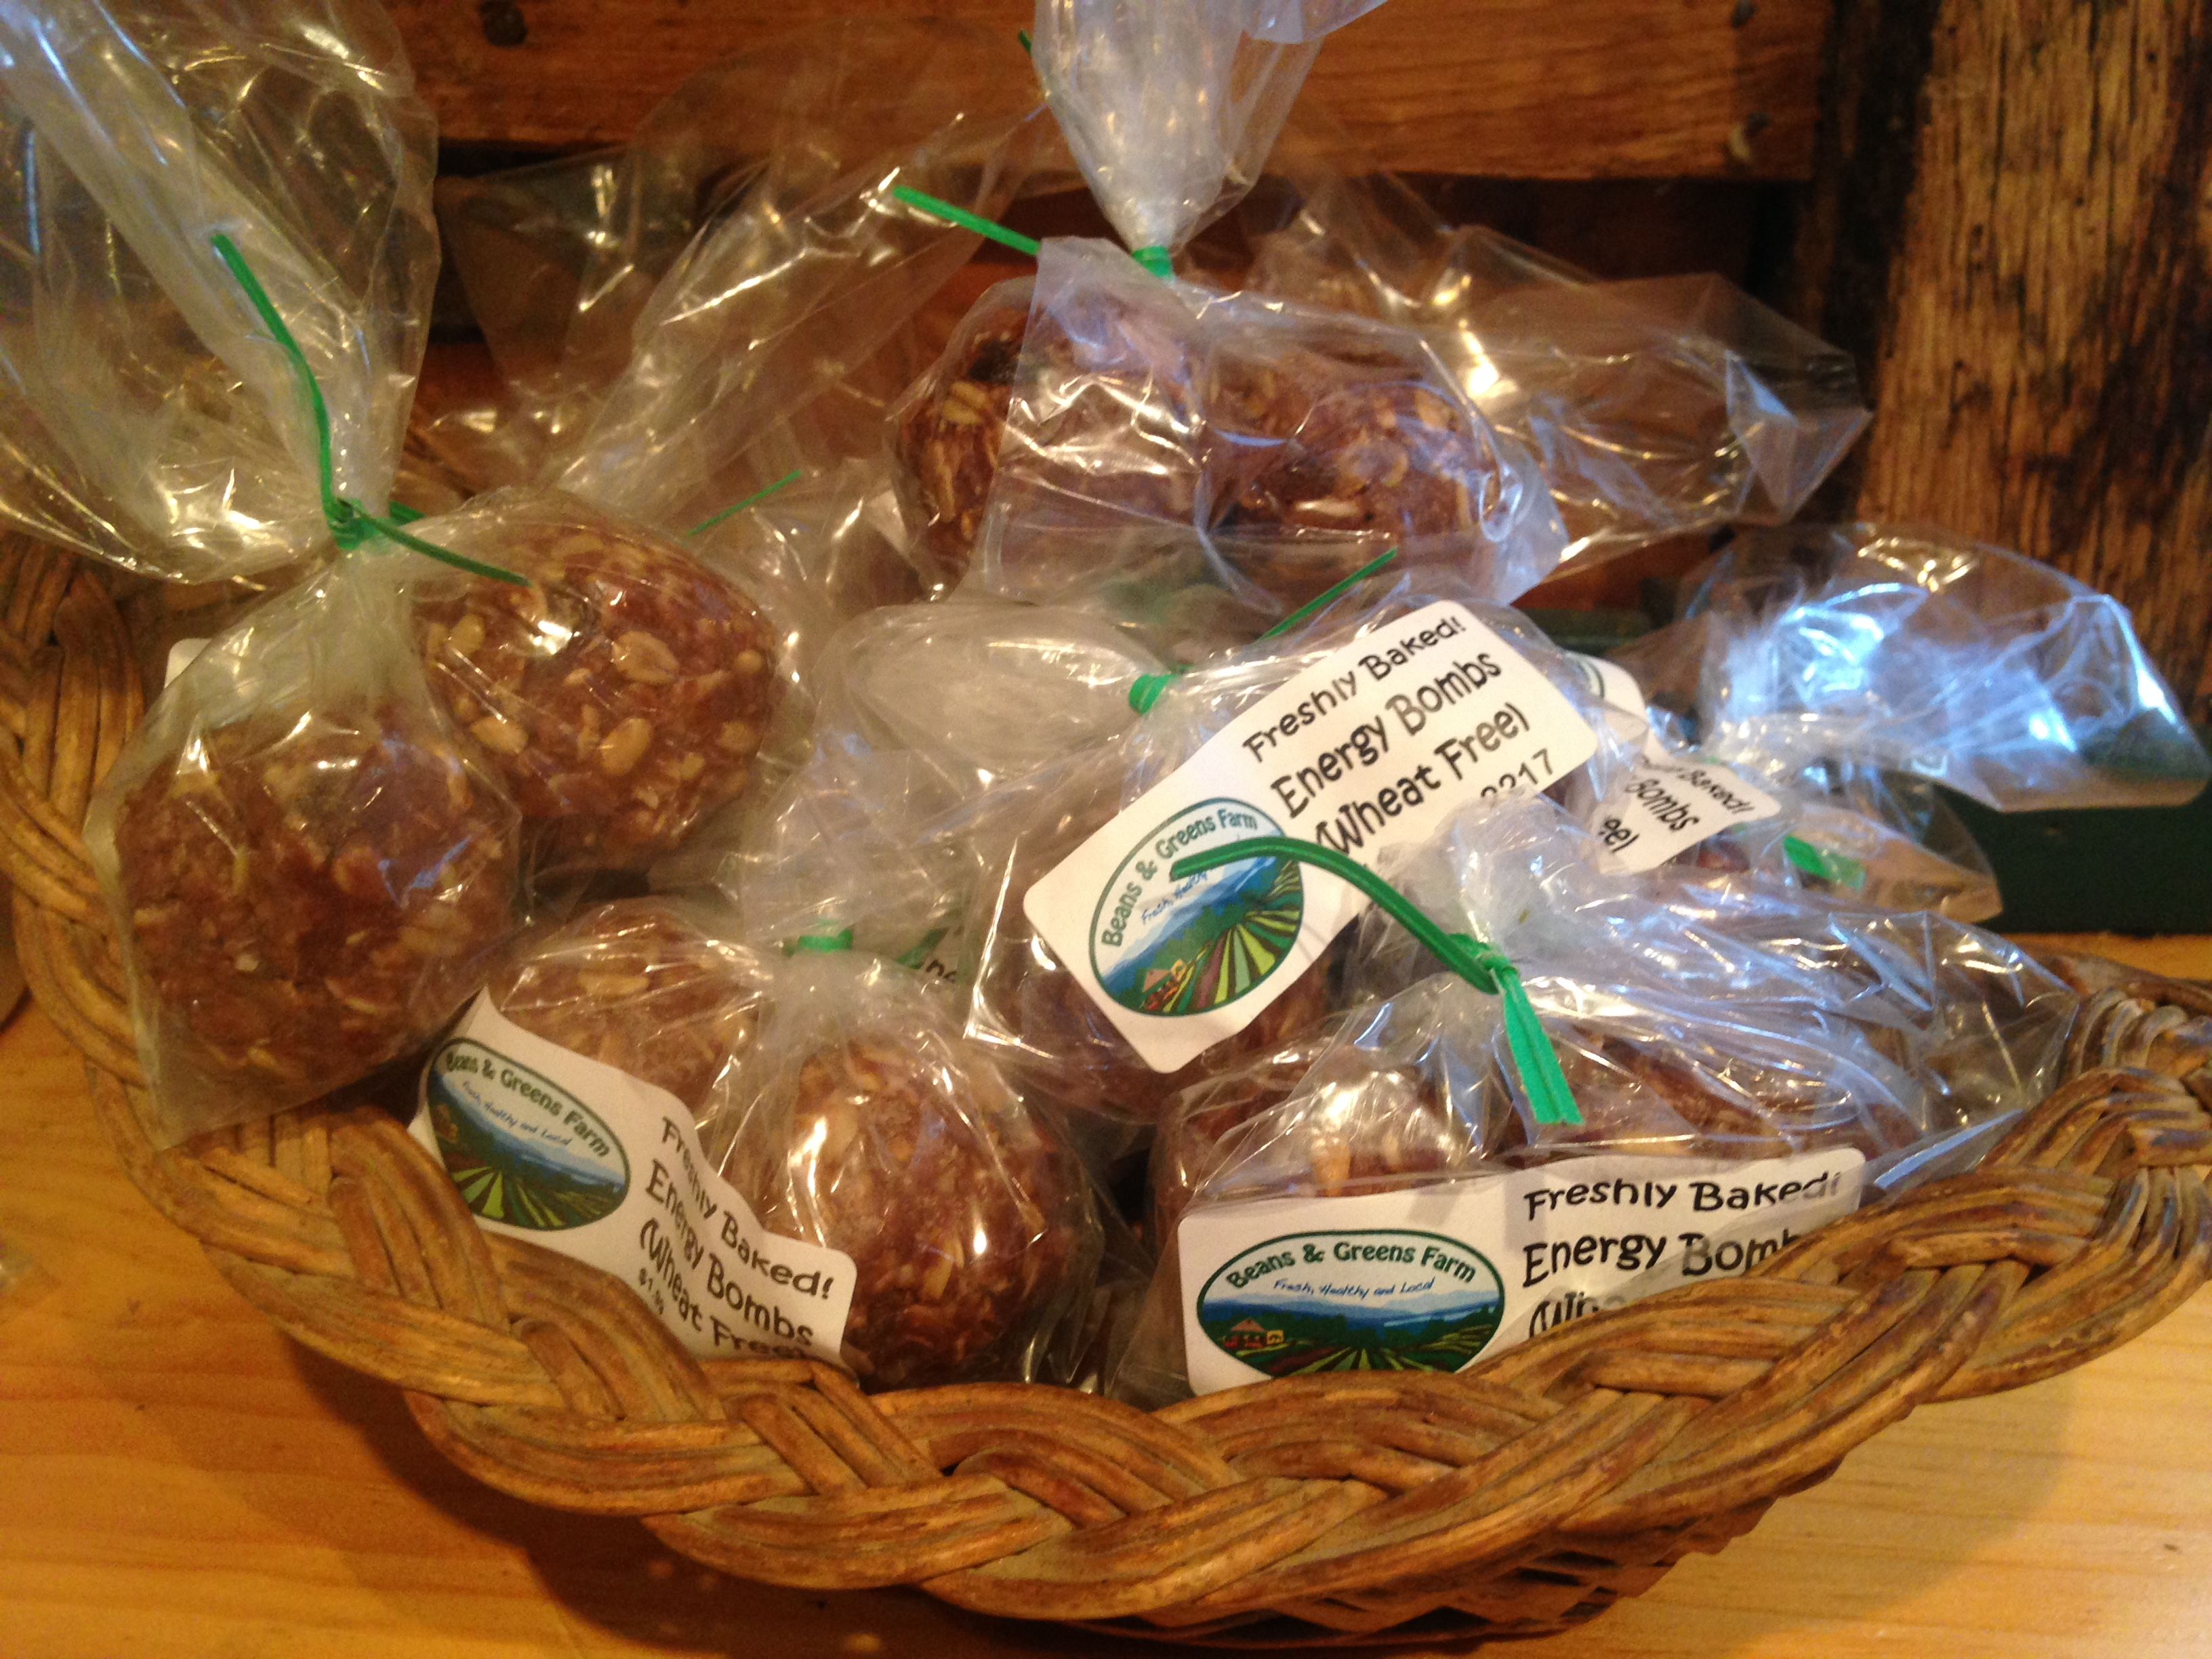 Beans & Greens Farm - Bakery Energy Bombs